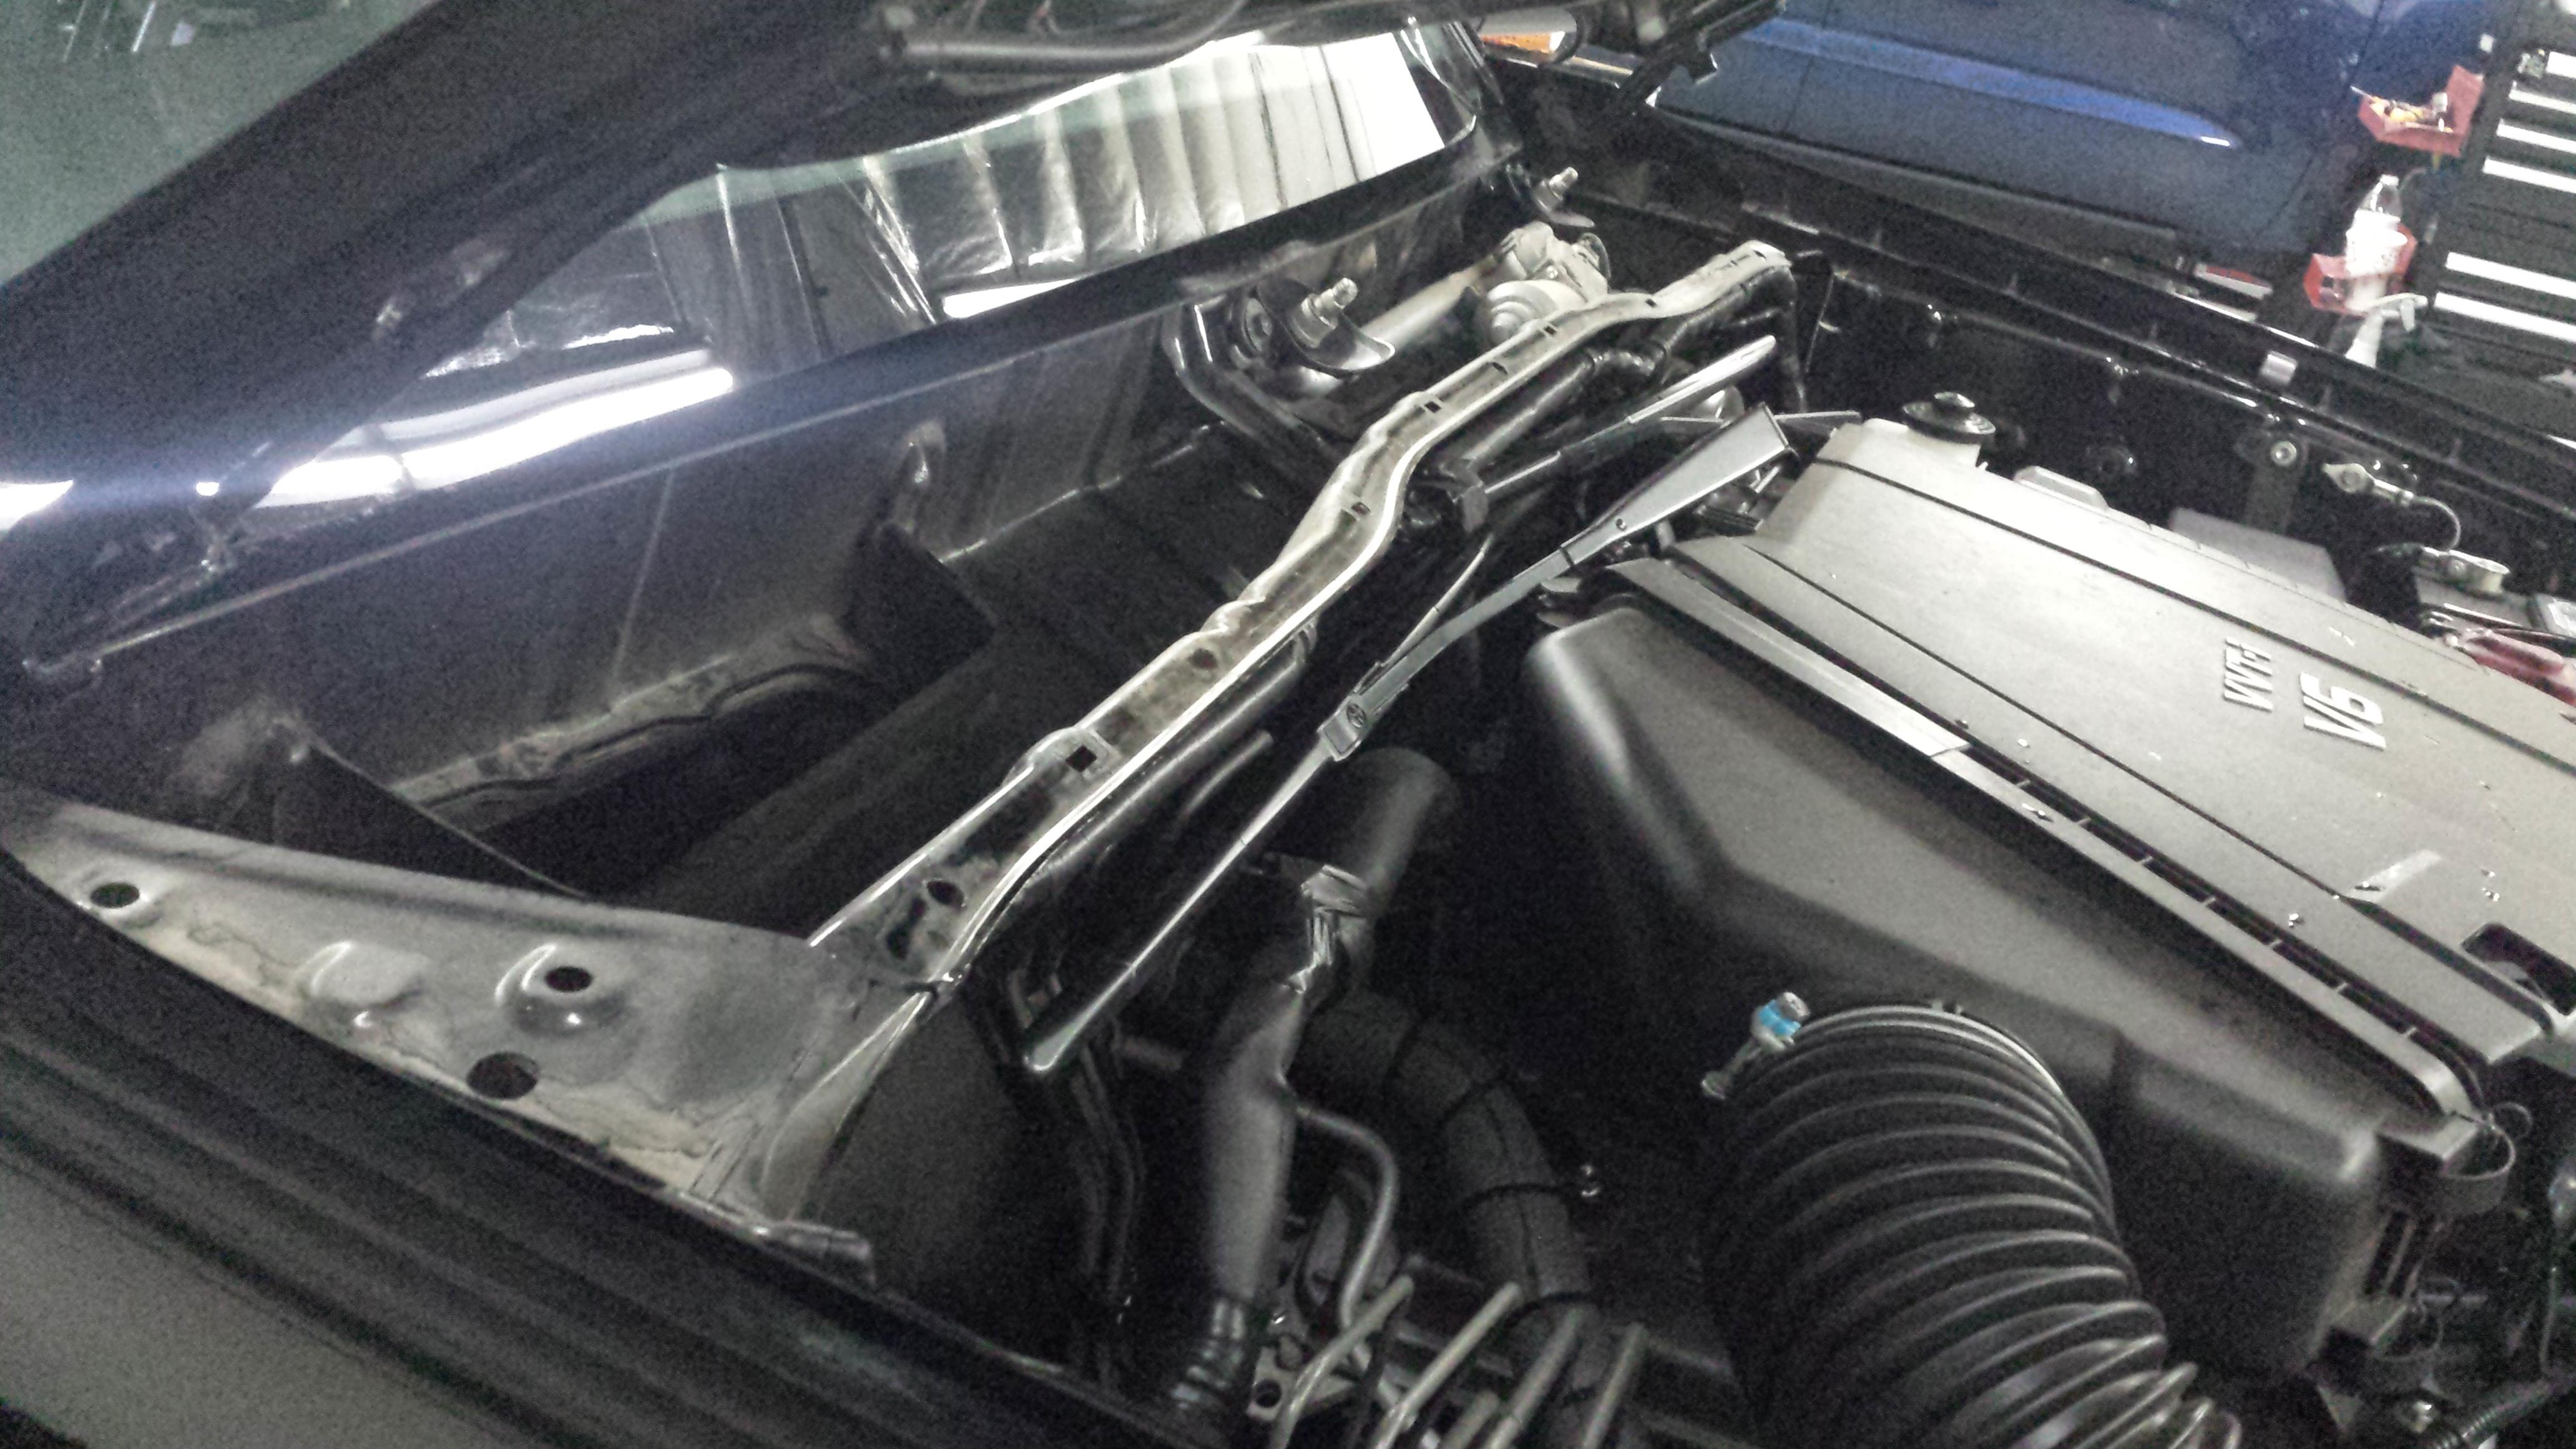 Water In Thru Cabin Air Intake My Solution Toyota Nation Forum 2000 4runner Filter Click Image For Larger Version Name 20151212 123620 Views 1550 Size 8362